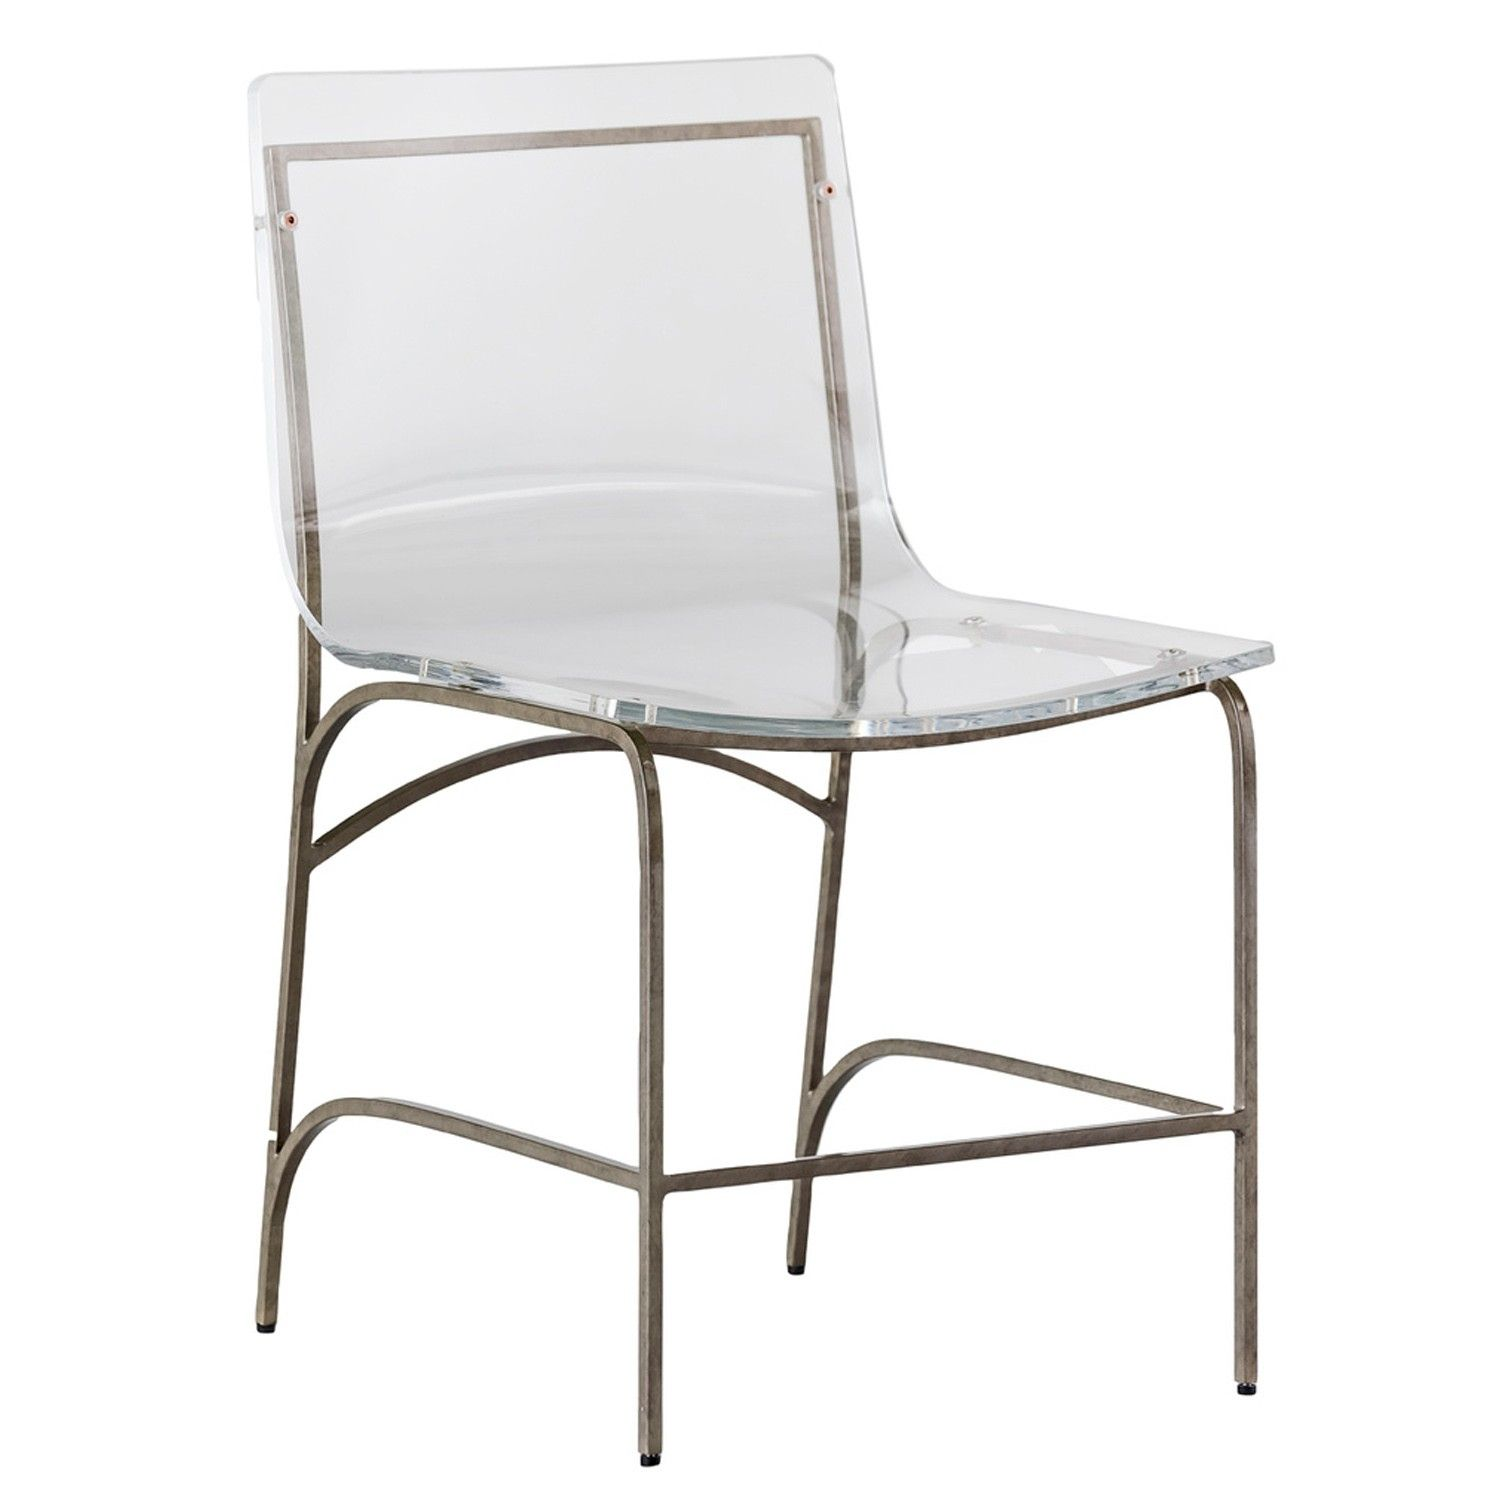 The Penelope Clear Lucite and silver metal dining chair is a clear